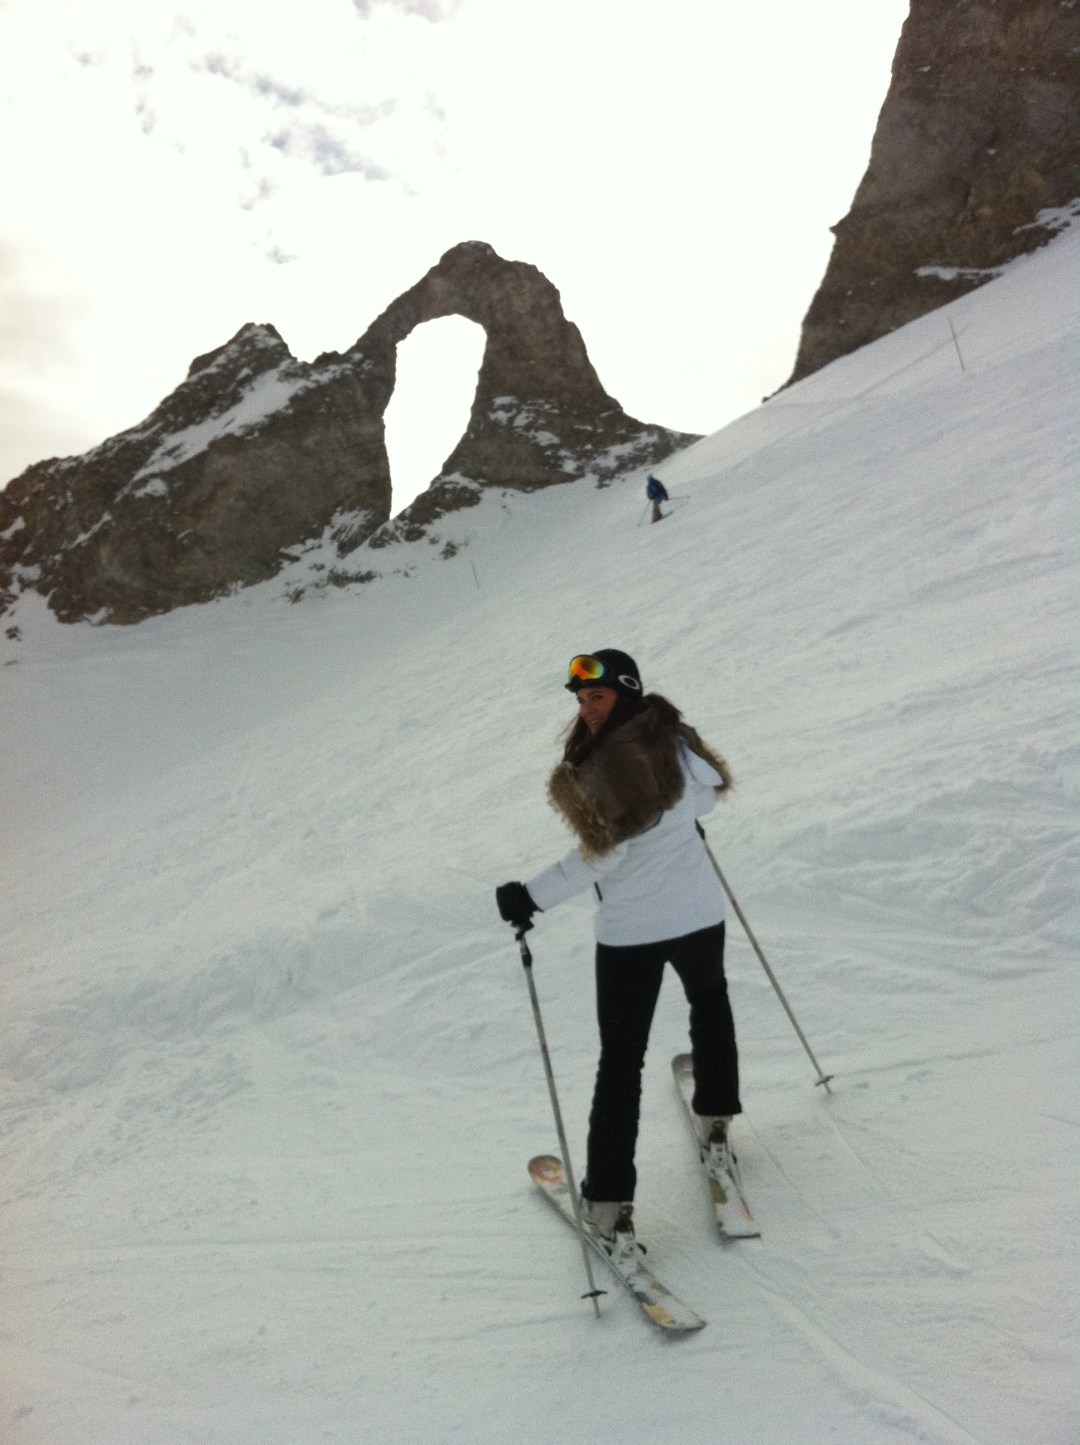 Sacha from our LMR group stopped in a great spot in Tignes - The eye of the needle